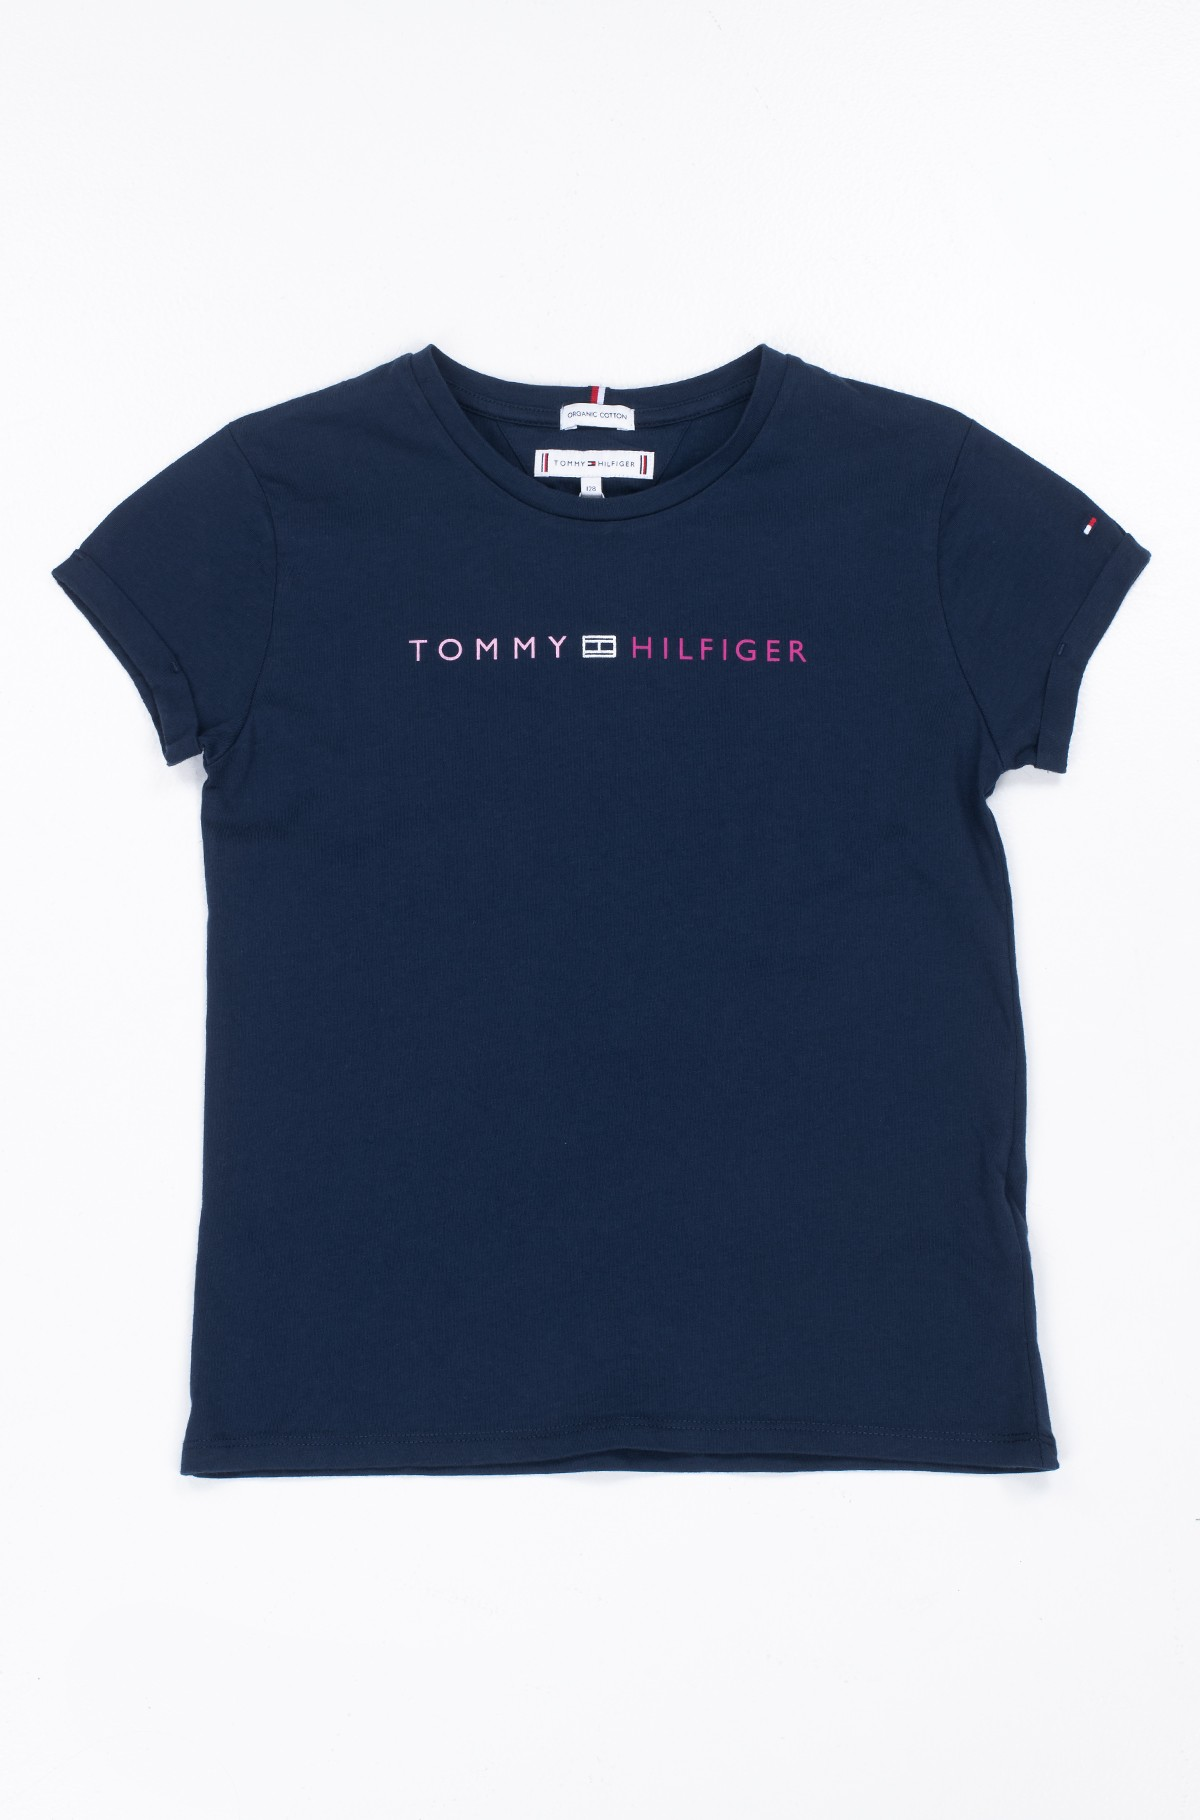 Kids t-shirt ESSENTIAL TOMMY ROLL UP TEE S/S-full-1